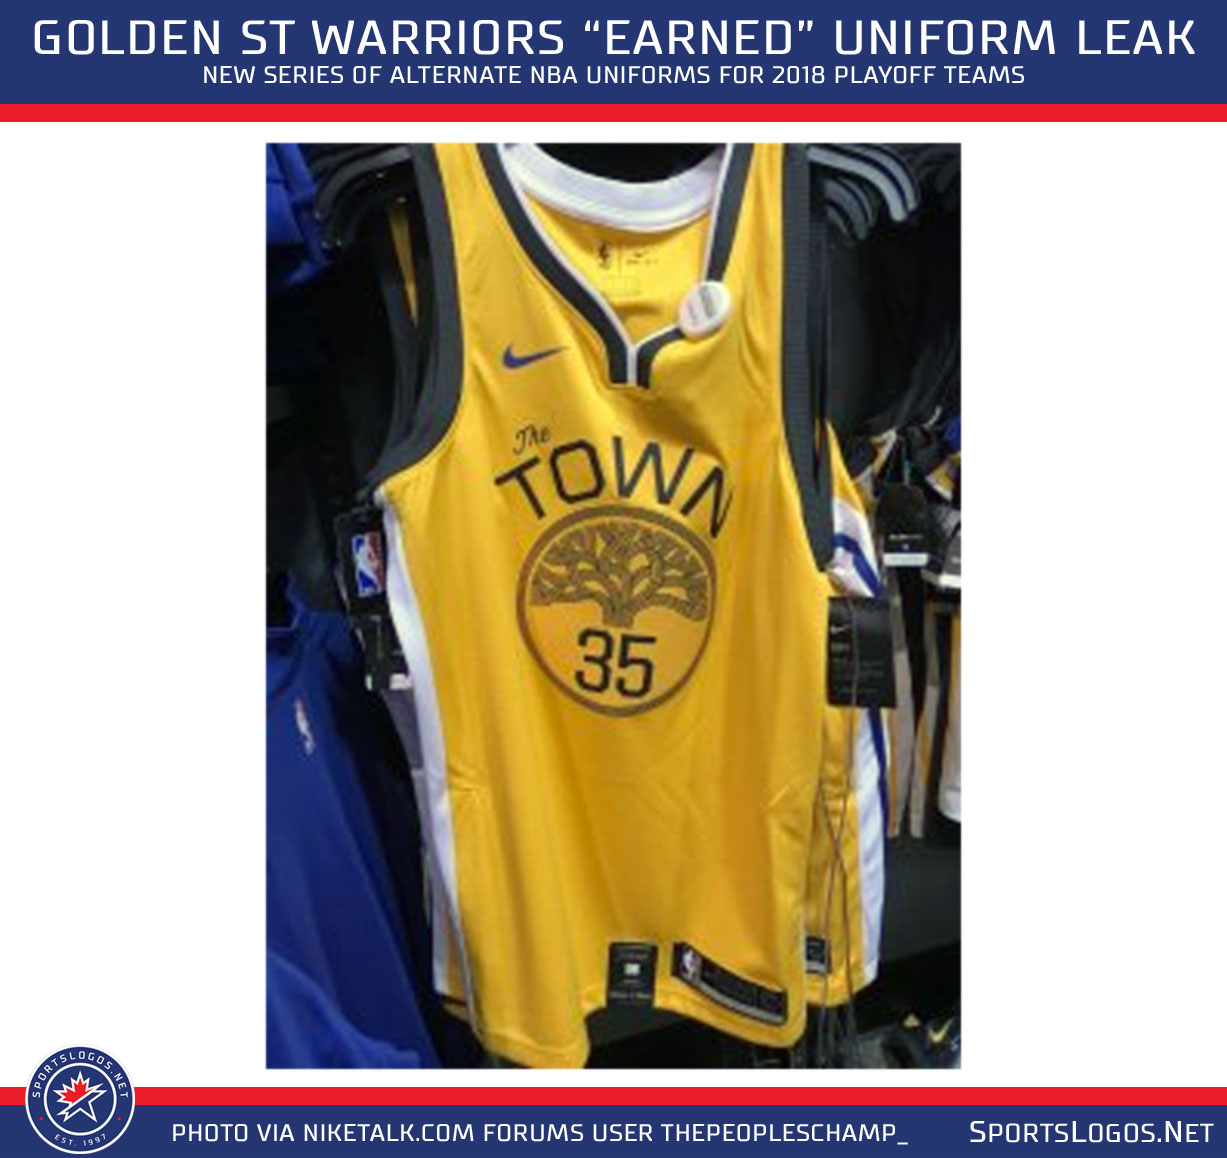 wholesale dealer 94d9d d3ef6 New Earned Uniforms for Heat, Jazz, Warriors Leak | Chris ...